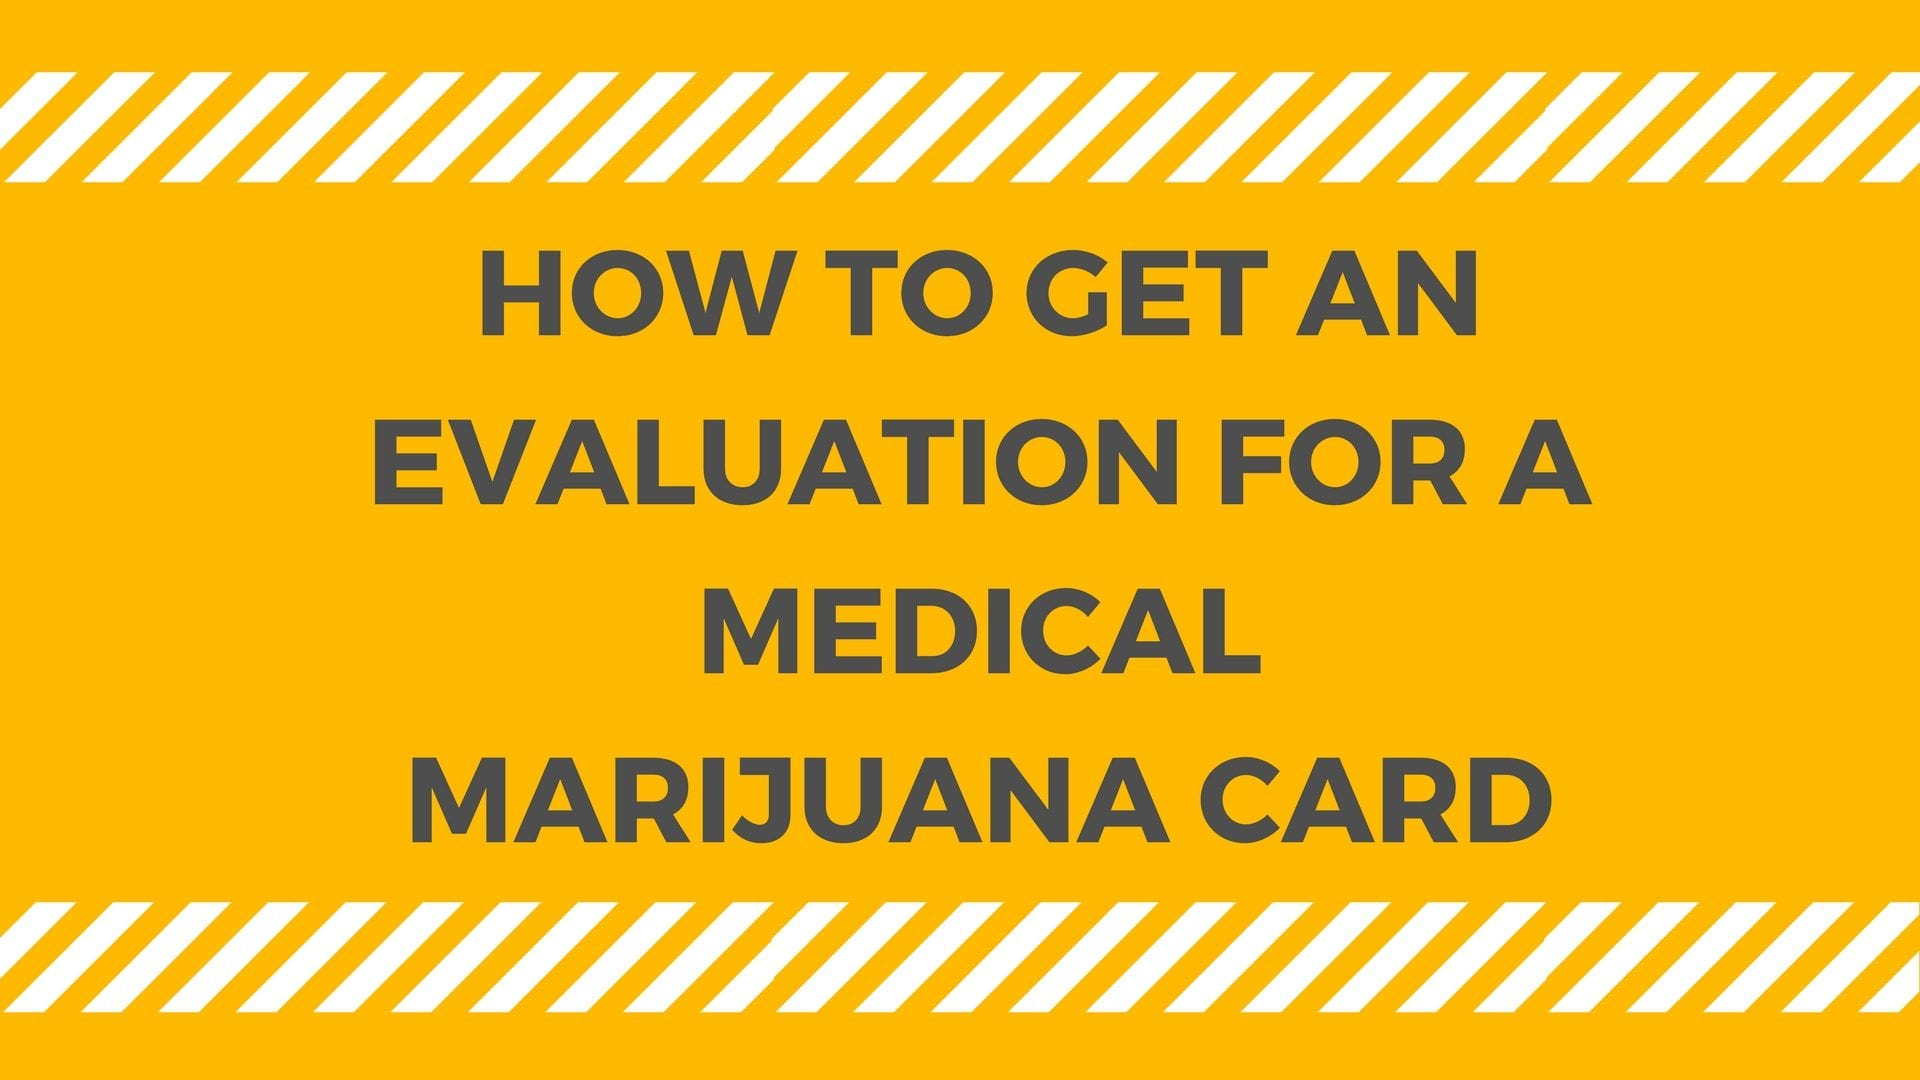 HOW TO GET AN EVALUATION FOR A MEDICAL MARIJUANA CARD